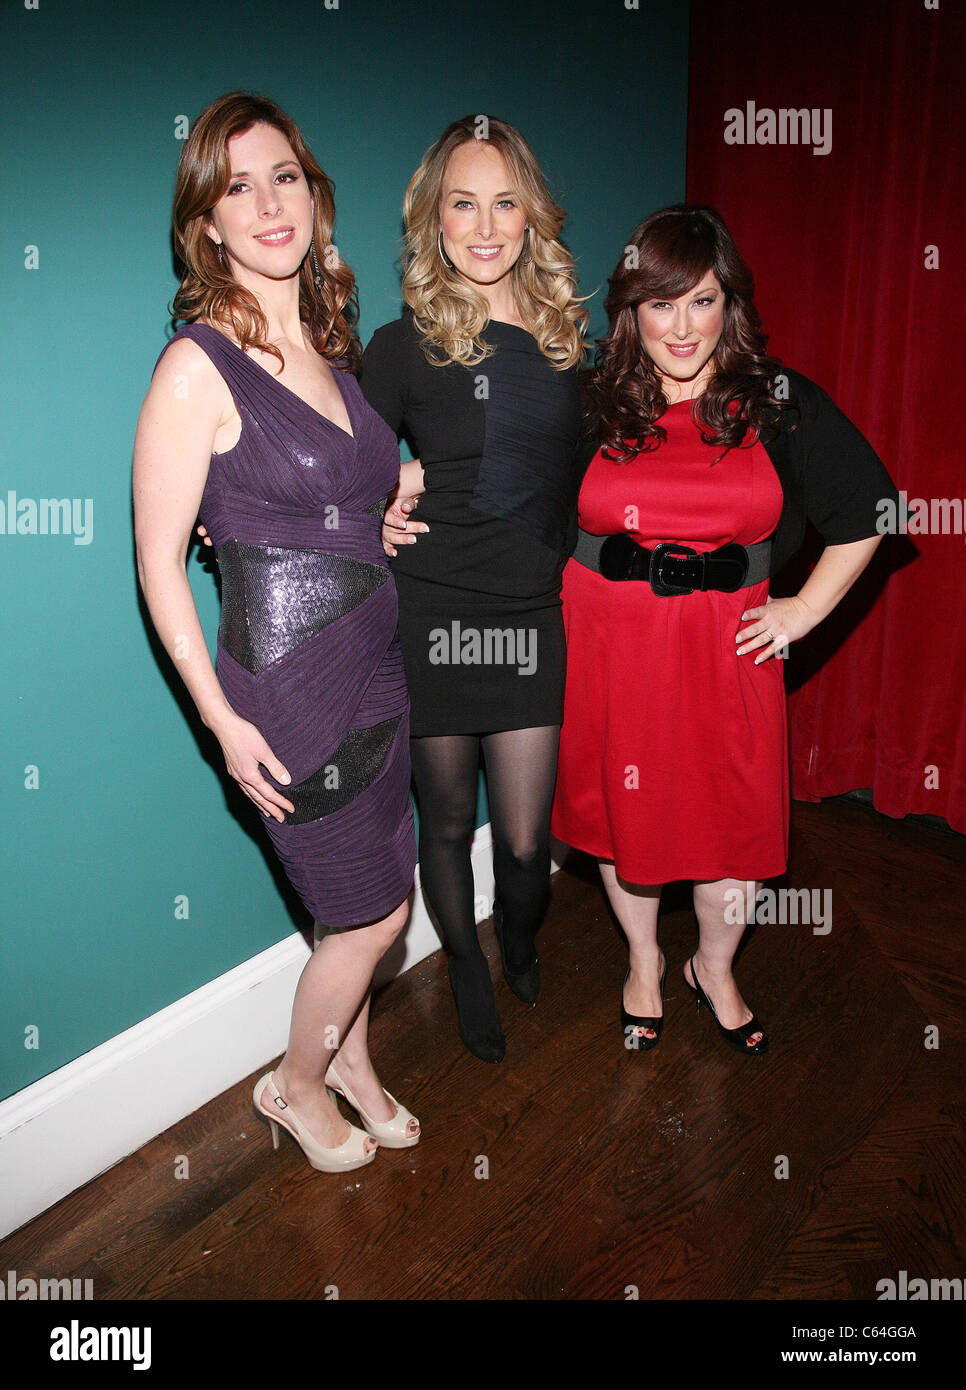 carnie wilson talk showcarnie wilson 2019, carnie wilson husband, carnie wilson children, carnie wilson weight loss, carnie wilson songs, carnie wilson dad, carnie wilson the talk, carnie wilson net worth, carnie wilson instagram, carnie wilson sister, carnie wilson age, carnie wilson kids, carnie wilson now, carnie wilson daughters, carnie wilson family, carnie wilson father, carnie wilson talk show, carnie wilson mom, carnie wilson husband dies, carnie wilson siblings